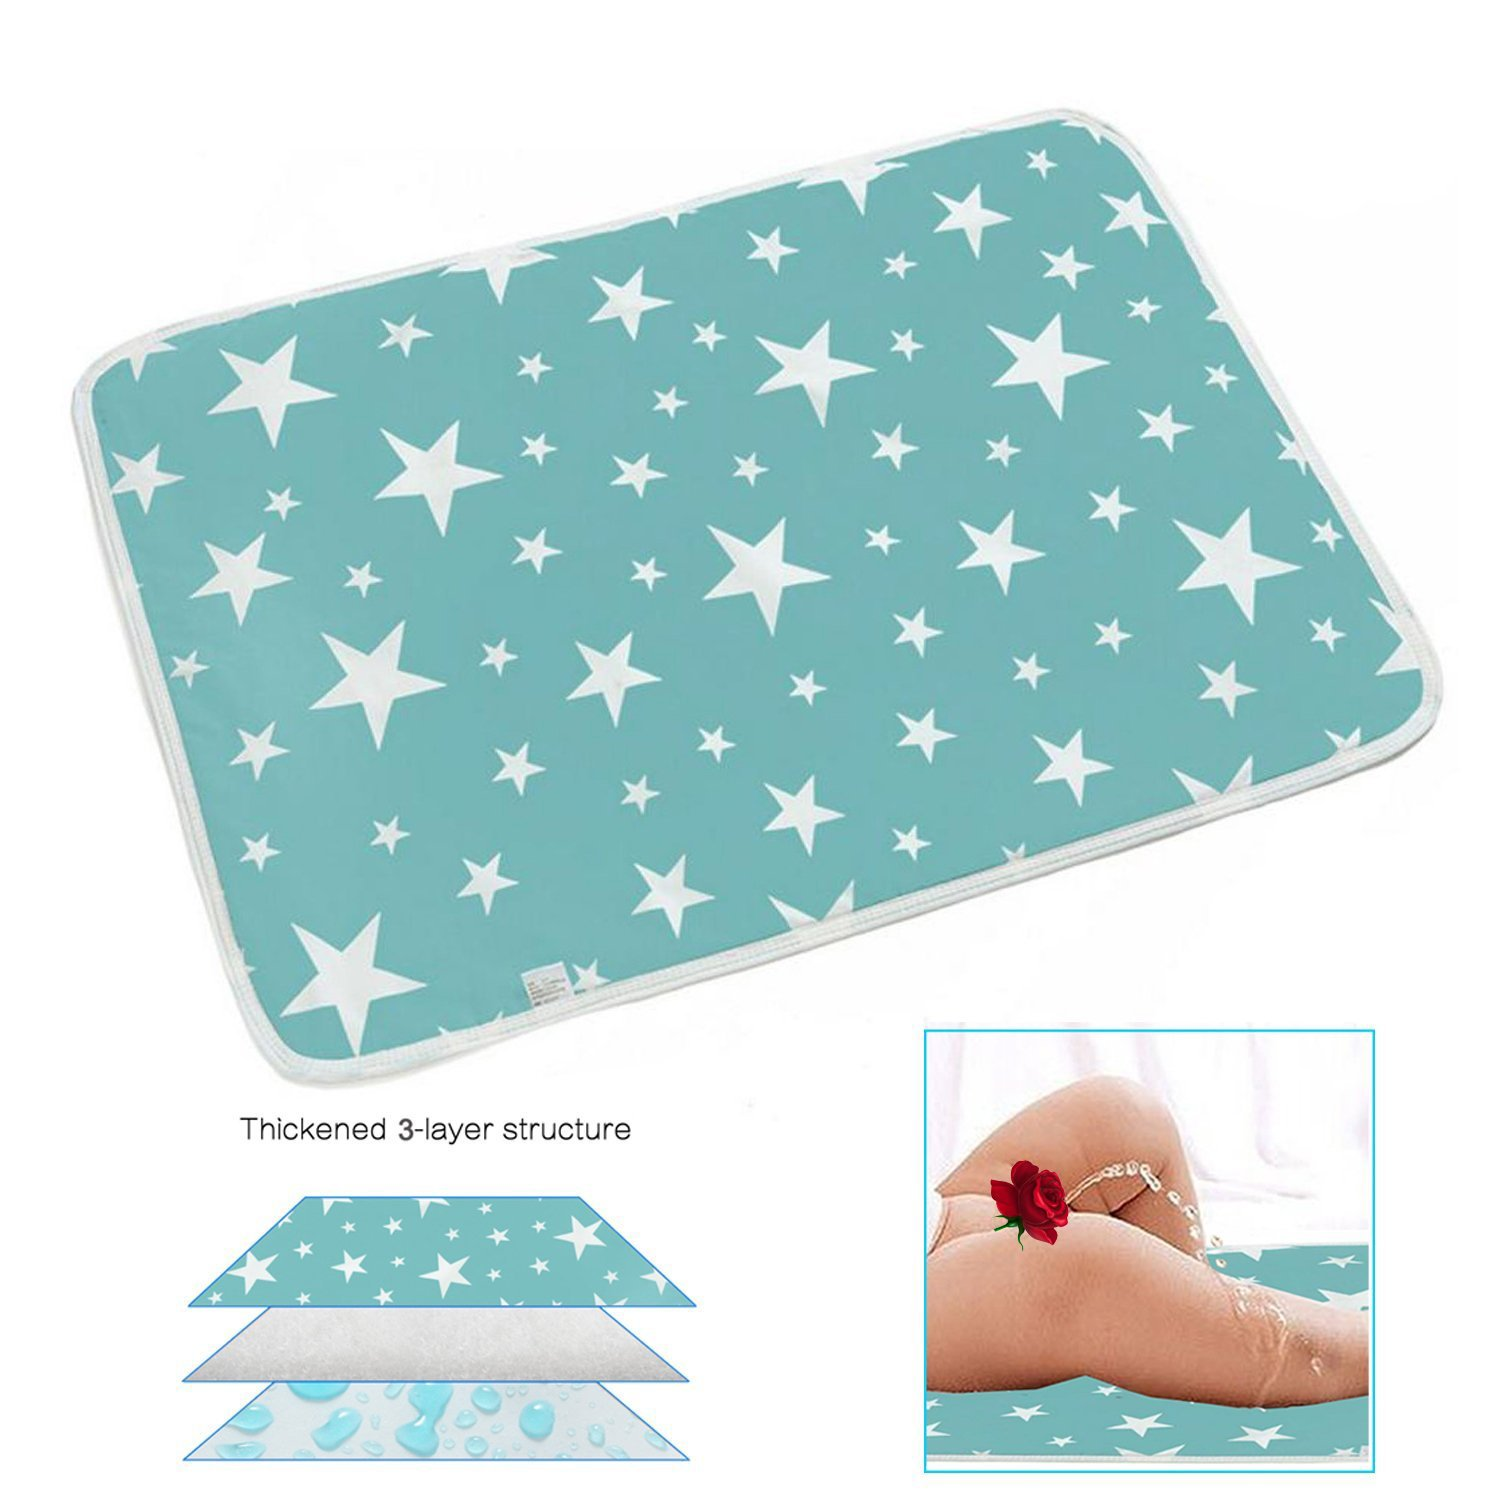 Changing Pad Changing Mat to Change Diaper (20x28) Waterproof Sheet for Any Places for Home Travel Bed Play Stroller Crib Car - Mattress Pad Cover for Boys and Girls Yiwalab